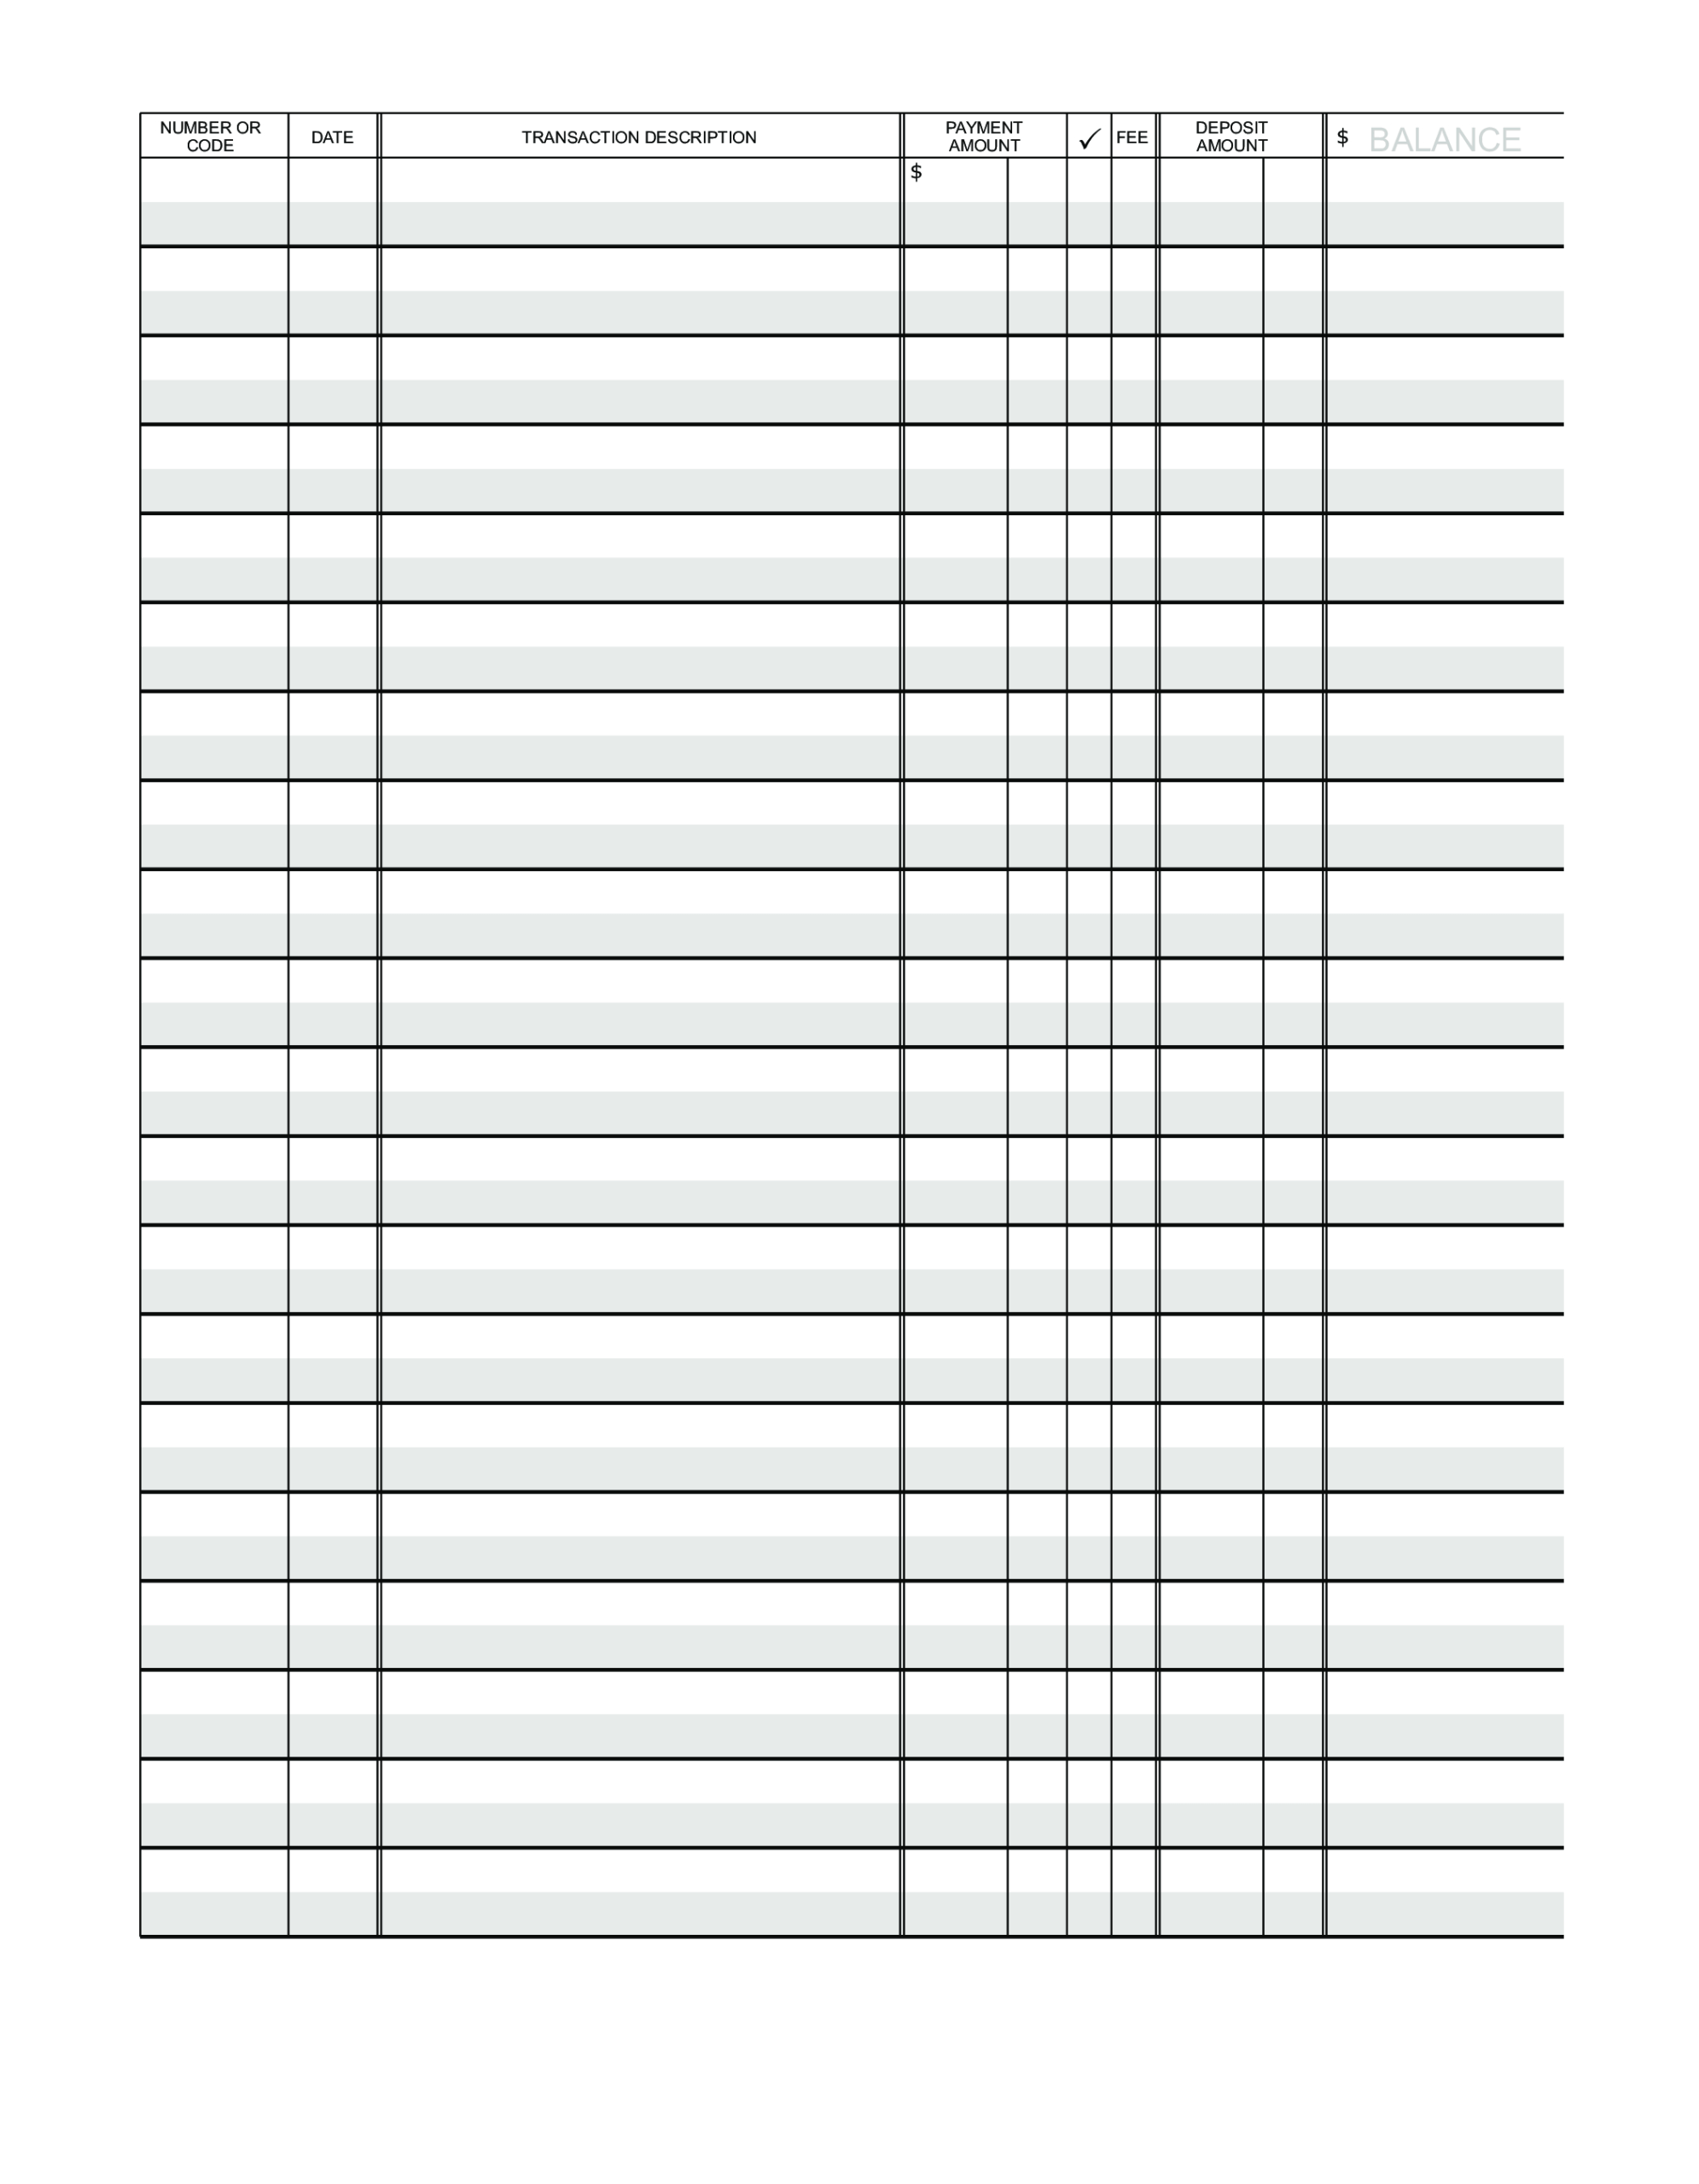 Blank Ledger Paper | Templates At Allbusinesstemplates In Blank Ledger Template